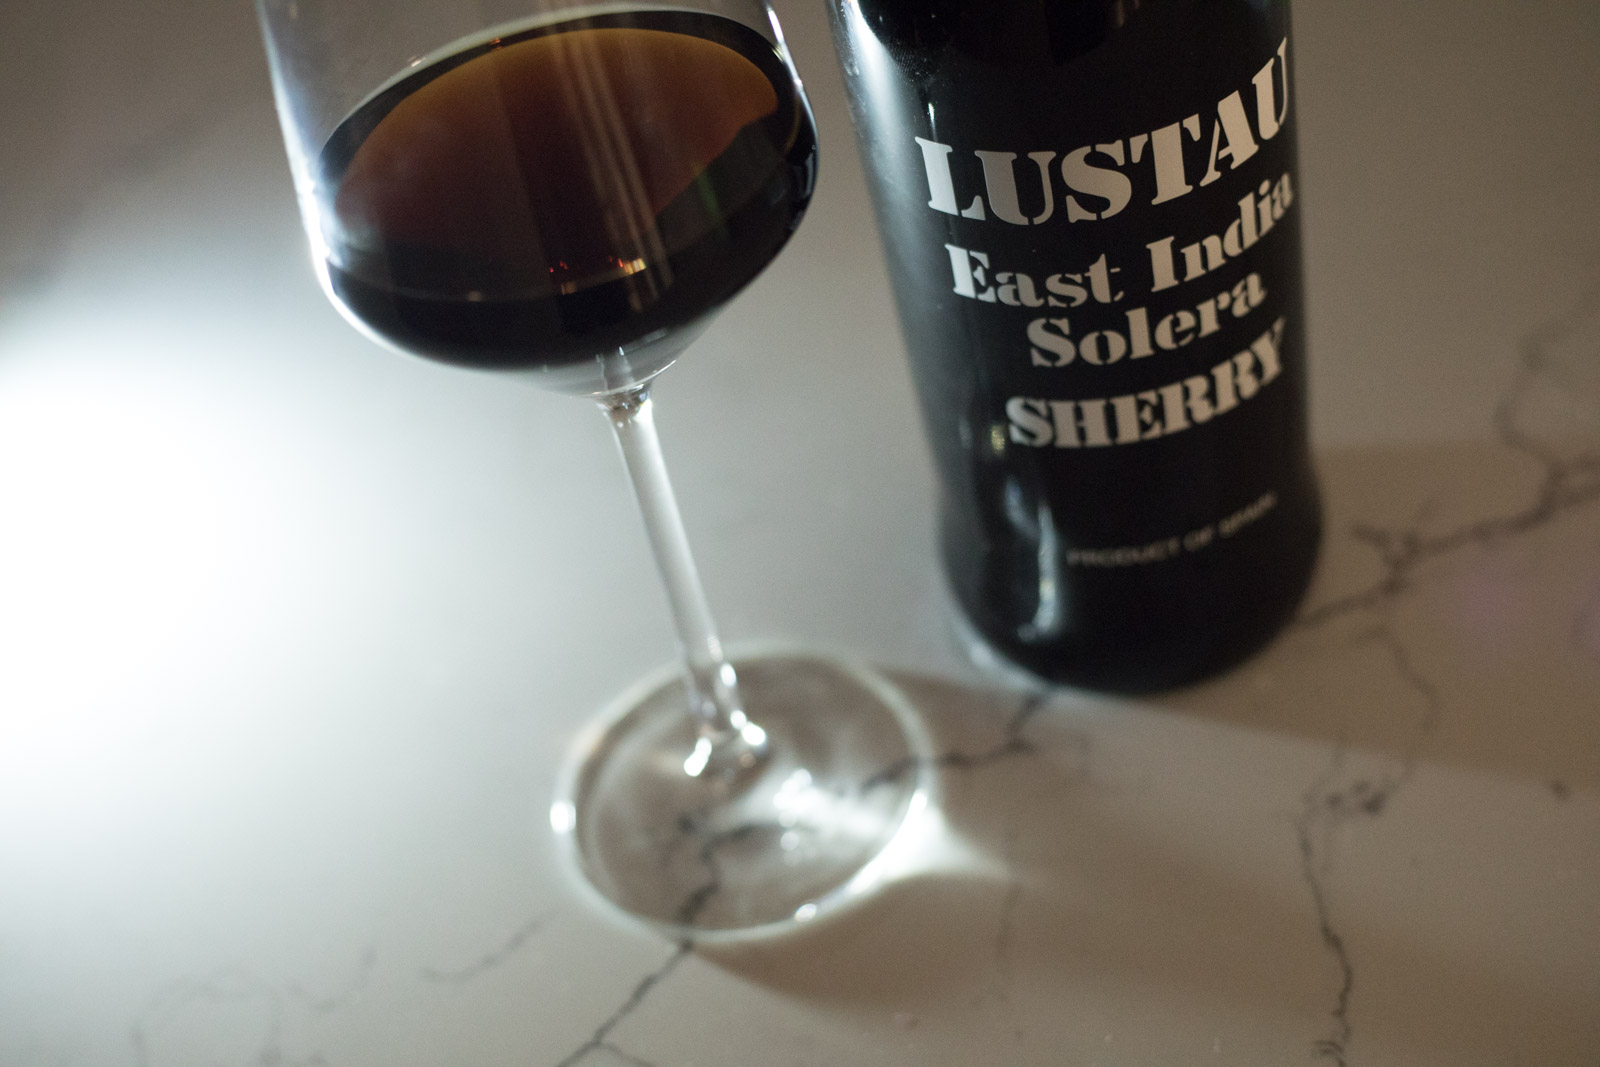 NV Emilio Lustau East India Solera Sherry. Dessert wines and sweet wines for Christmas. Opening a Bottle special wine tasting report. ©Kevin Day/Opening a Bottle